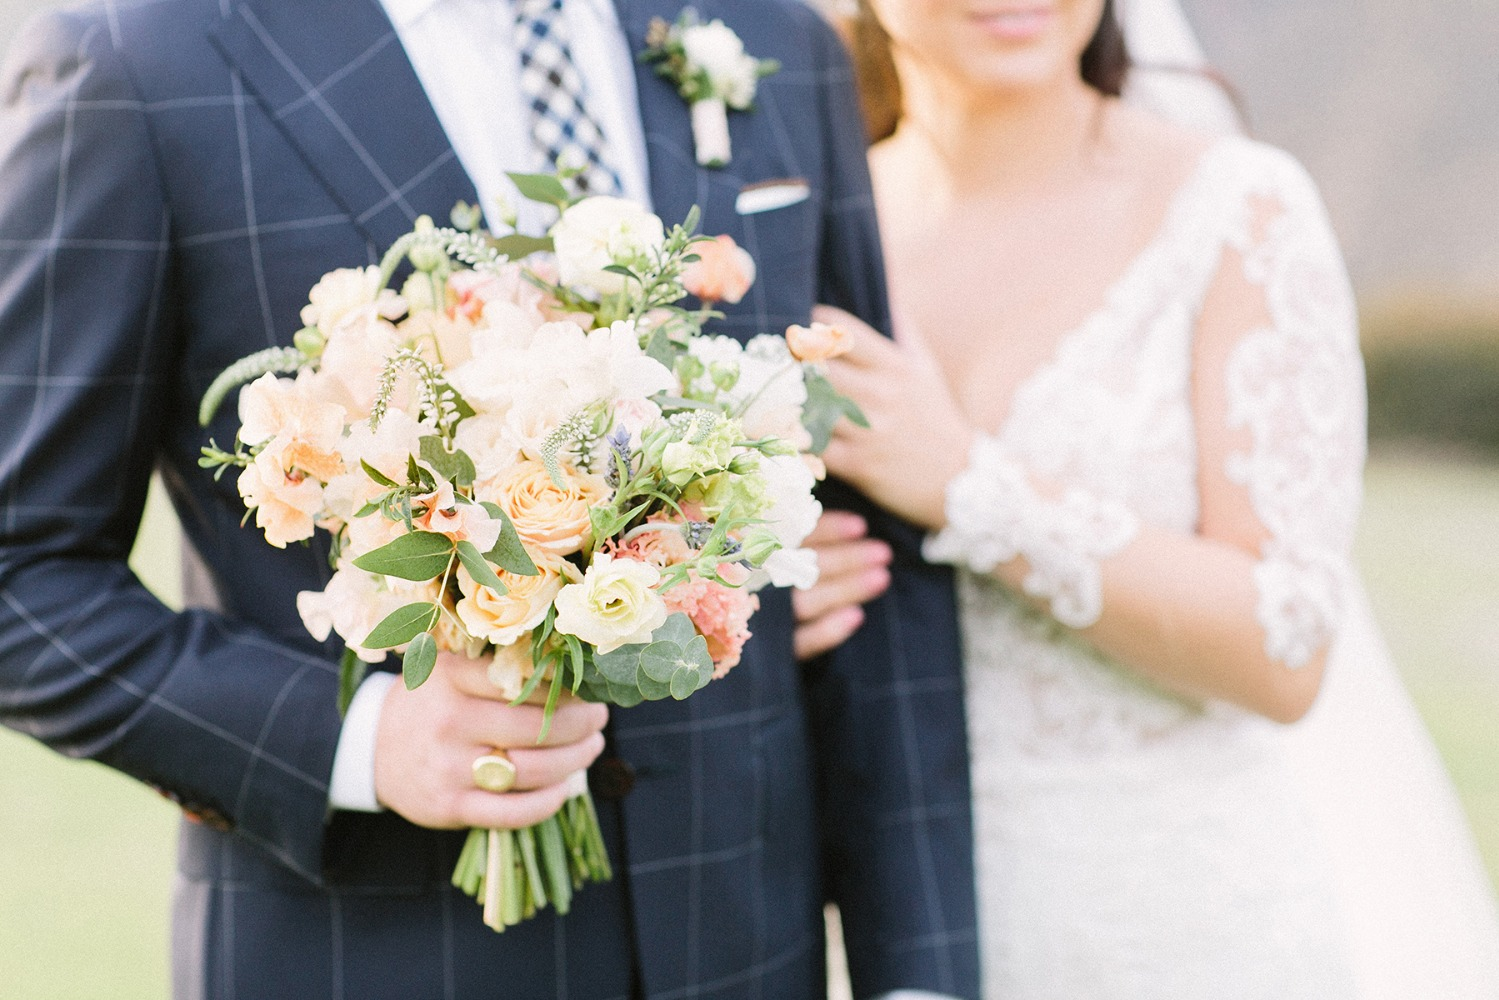 navy checkered suit and bouquet